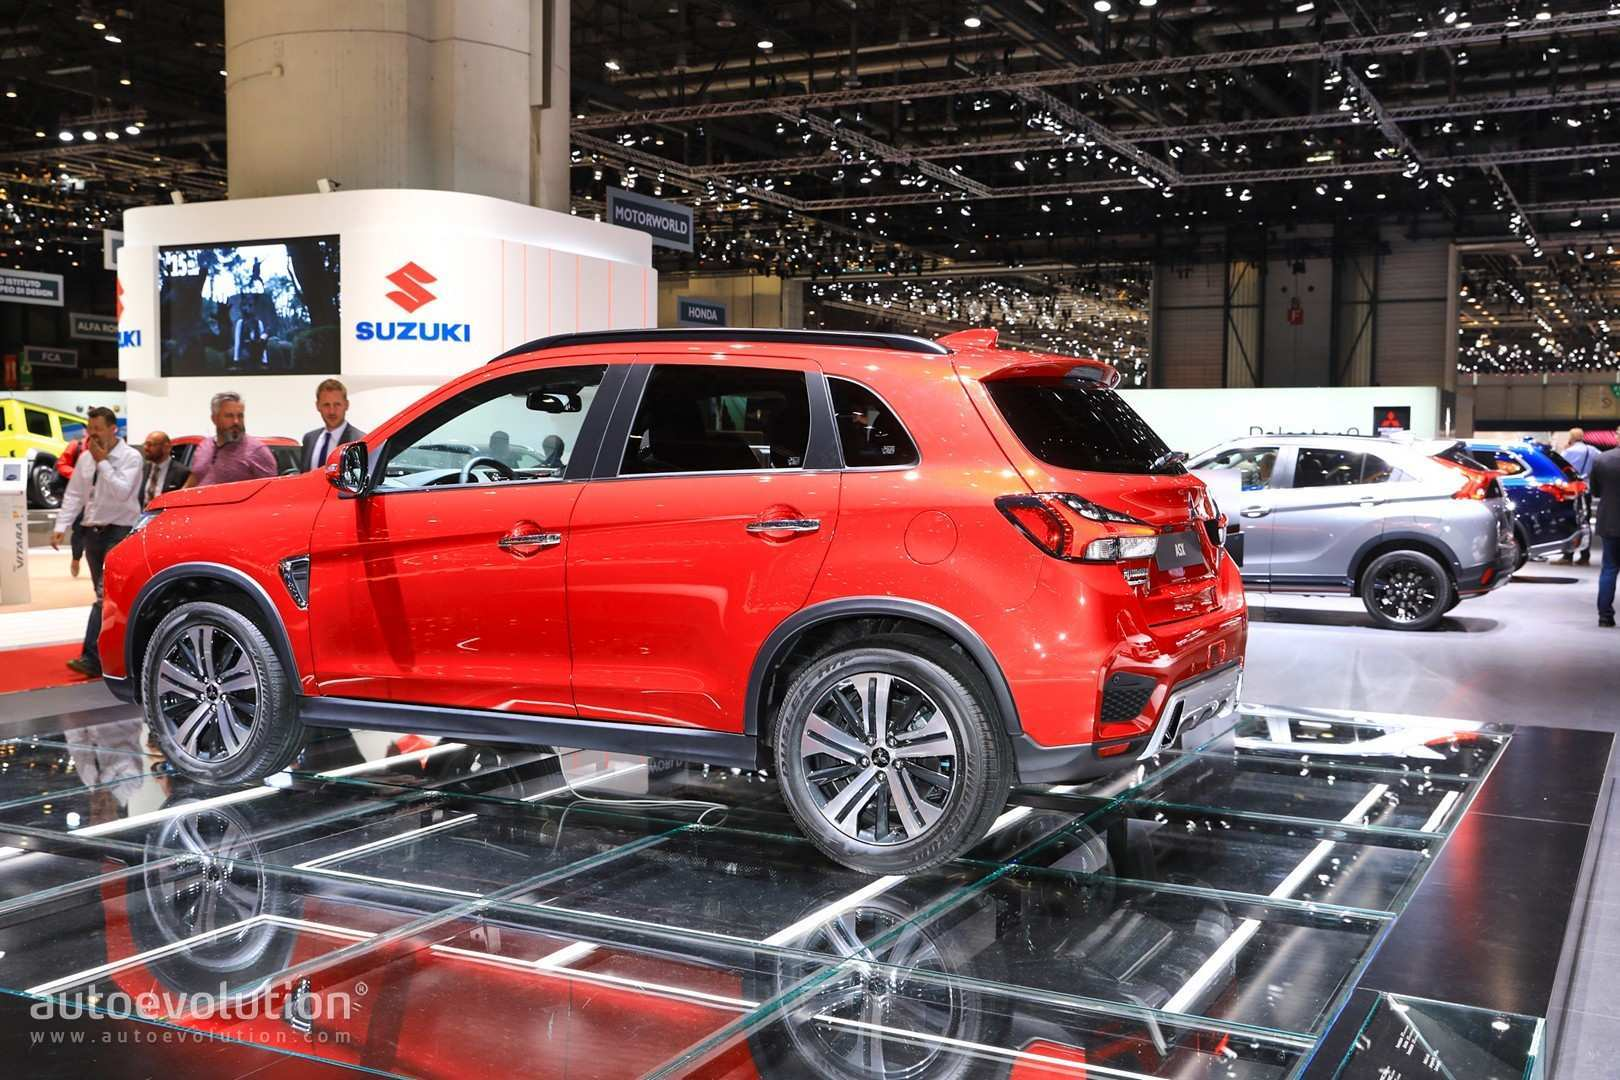 64 All New Mitsubishi Asx Facelift 2020 Price and Review by Mitsubishi Asx Facelift 2020